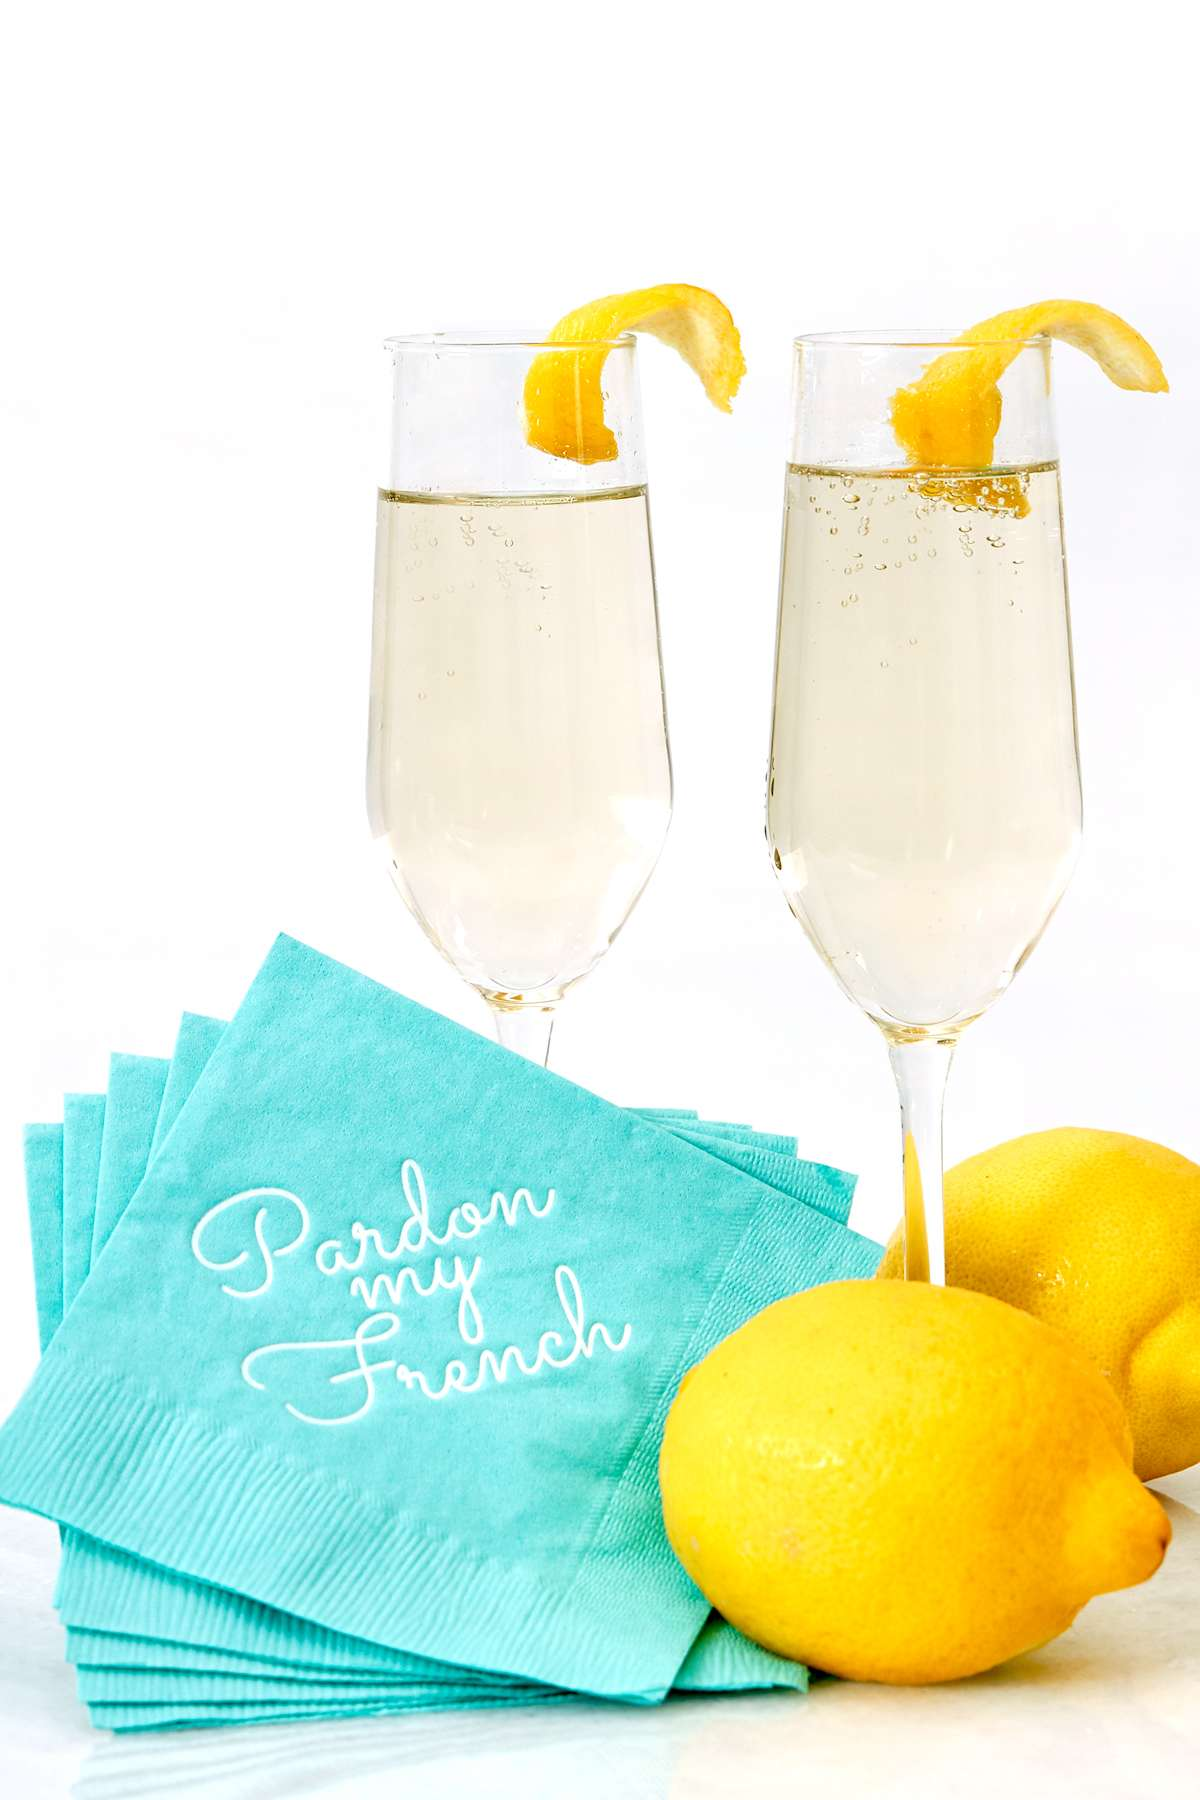 french 75 cocktail recipe with pardon my french cocktail napkin